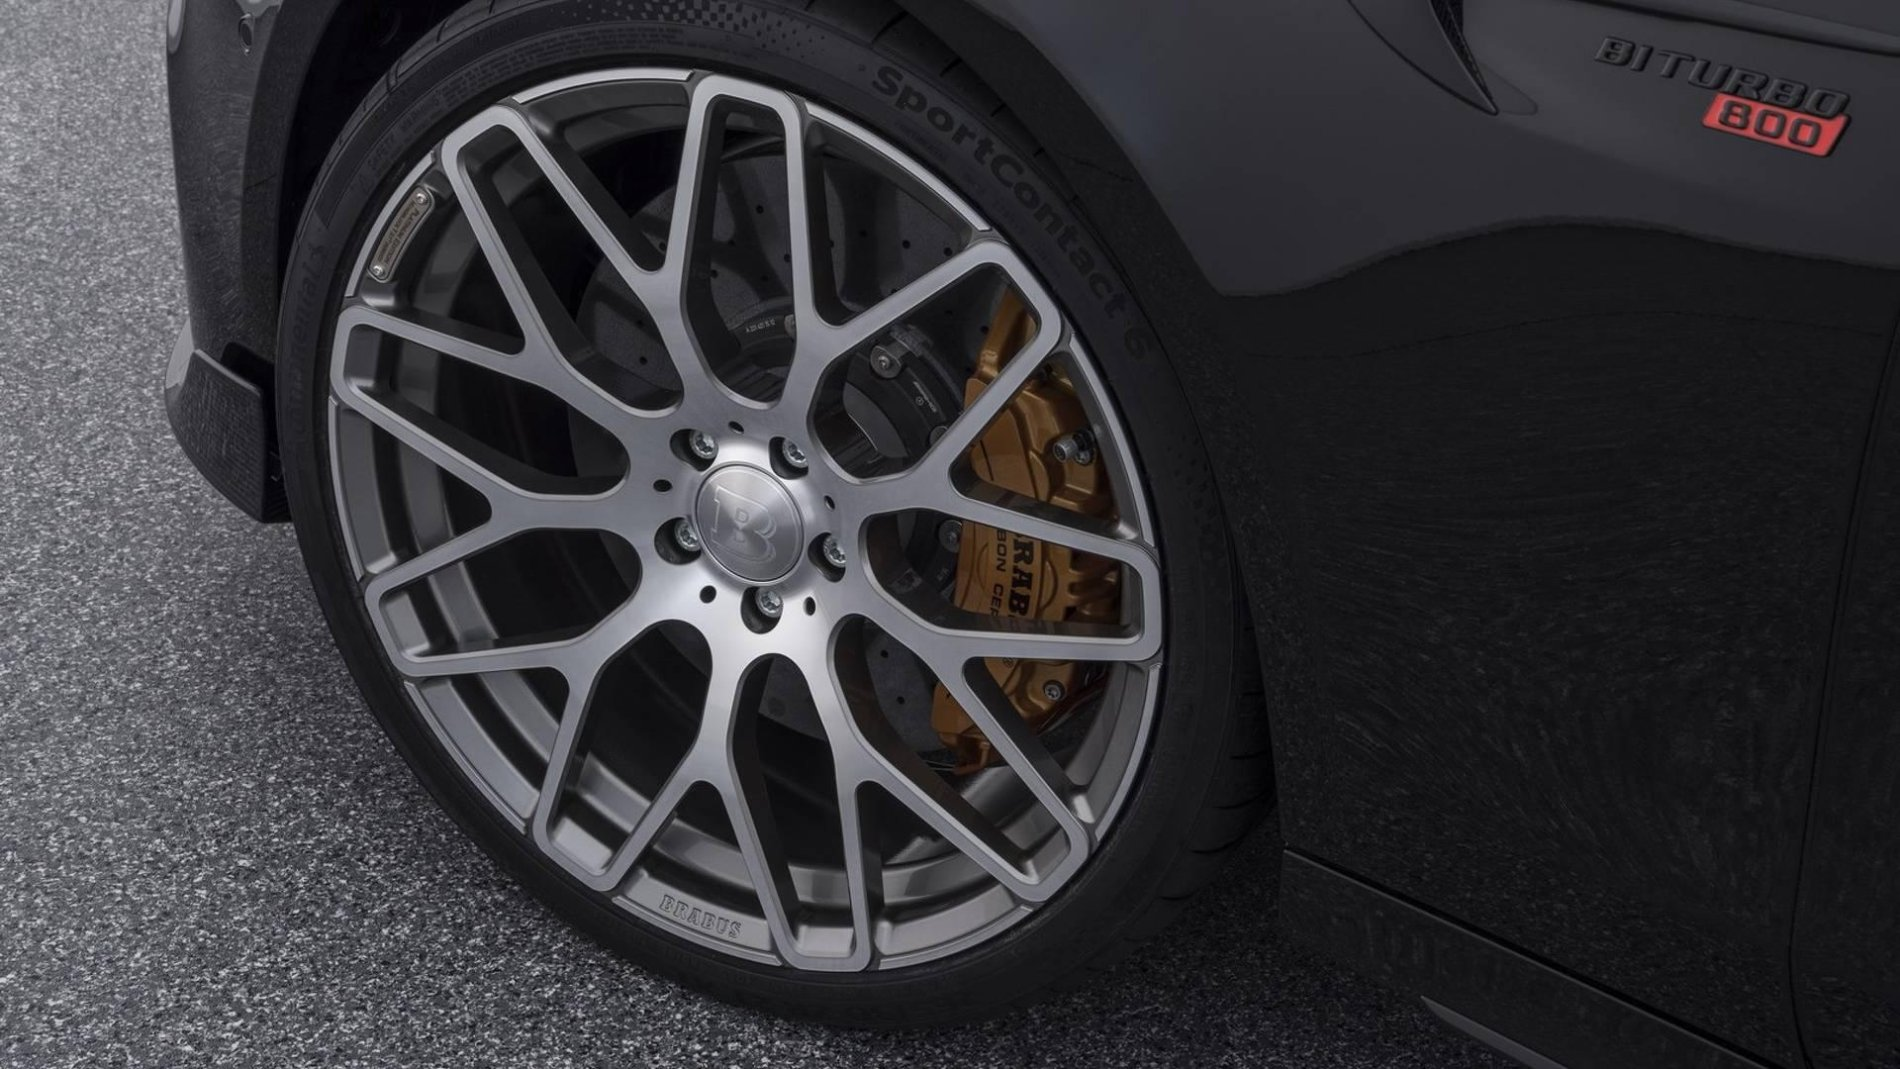 Mercedes-AMG E63 S by Brabus - Mercedes-AMG E63 S by Brabus